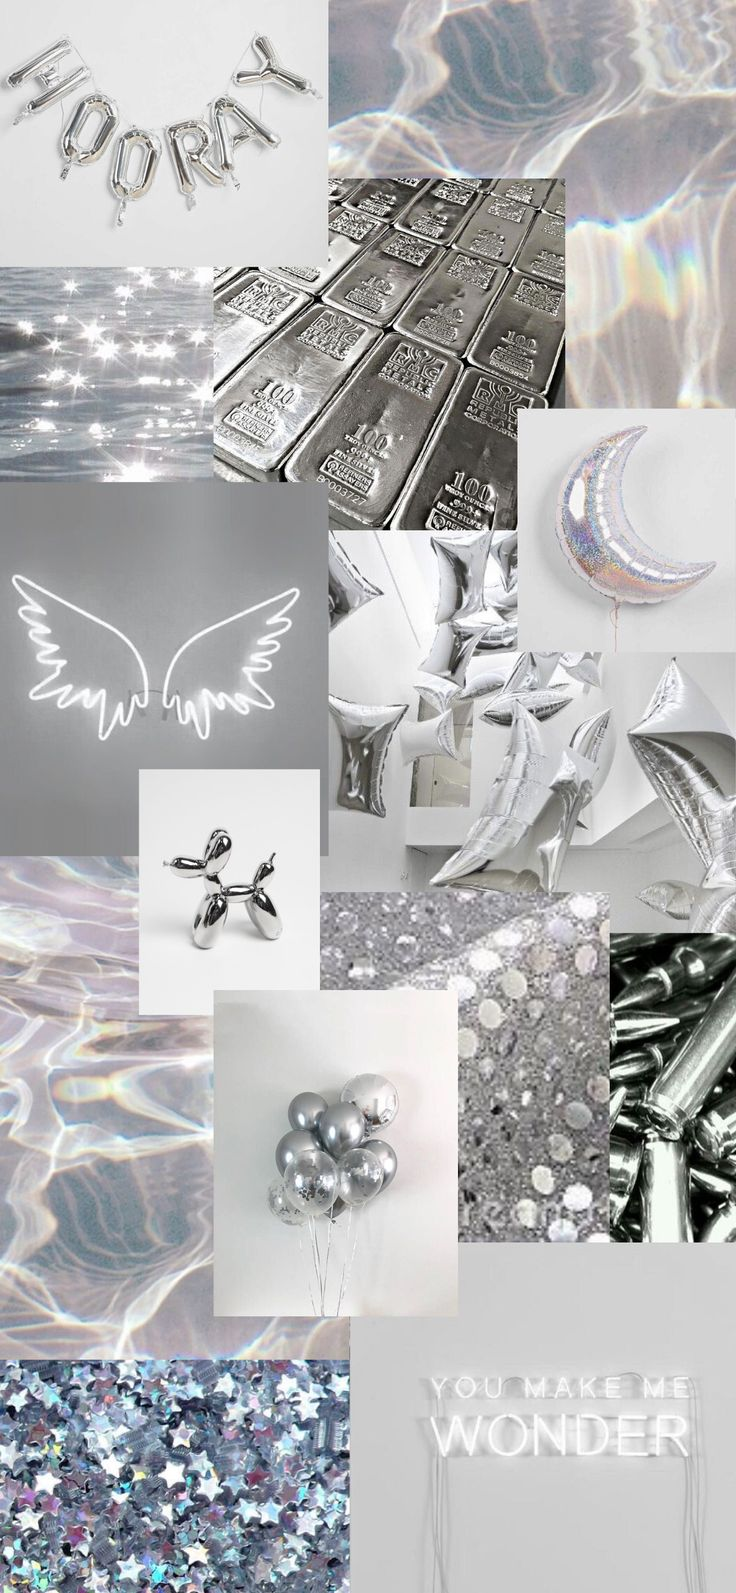 Android, zoom, widgetsmith & apple watch wallpaper design, art, ideas. Silver aesthetic wallpaper in 2020   Silver iphone